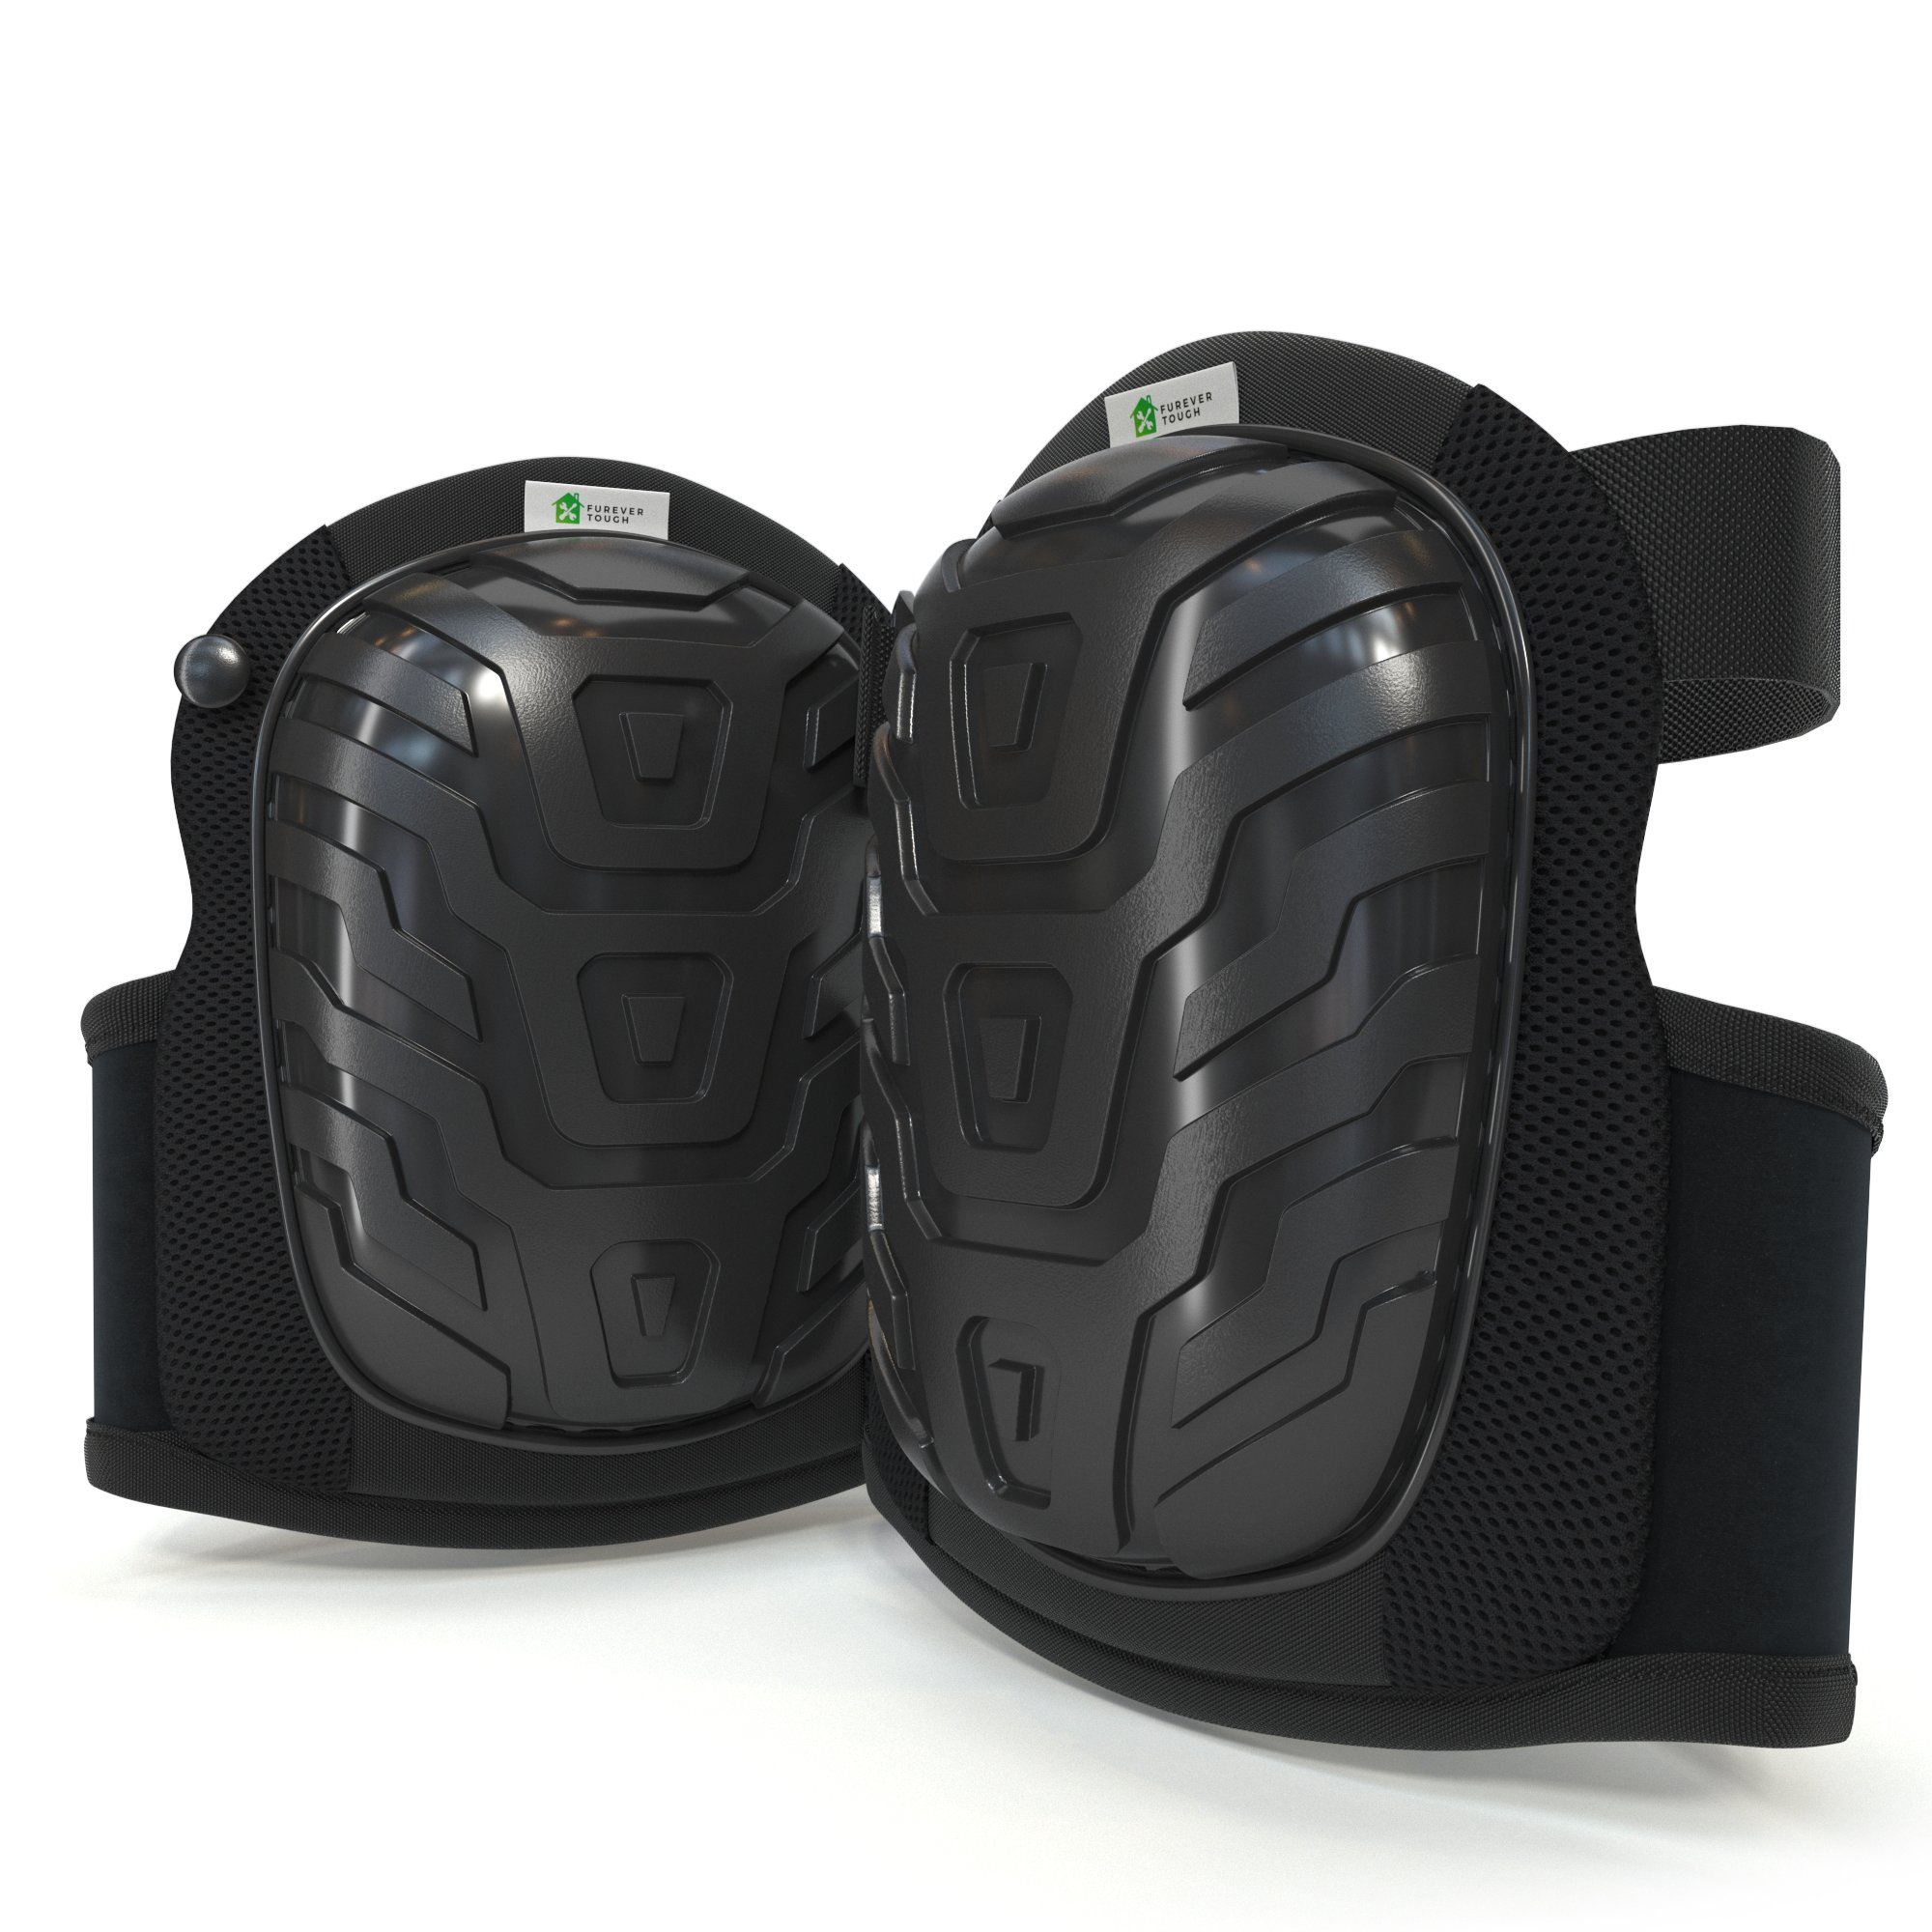 Professional Knee Pads with Comfortable Gel Cushion & Heavy Duty Foam Padding. Adjustable Neoprene Straps - Easy Fast Binding & Strong Clips. Non-Slip Protection for Construction, Gardening, Flooring